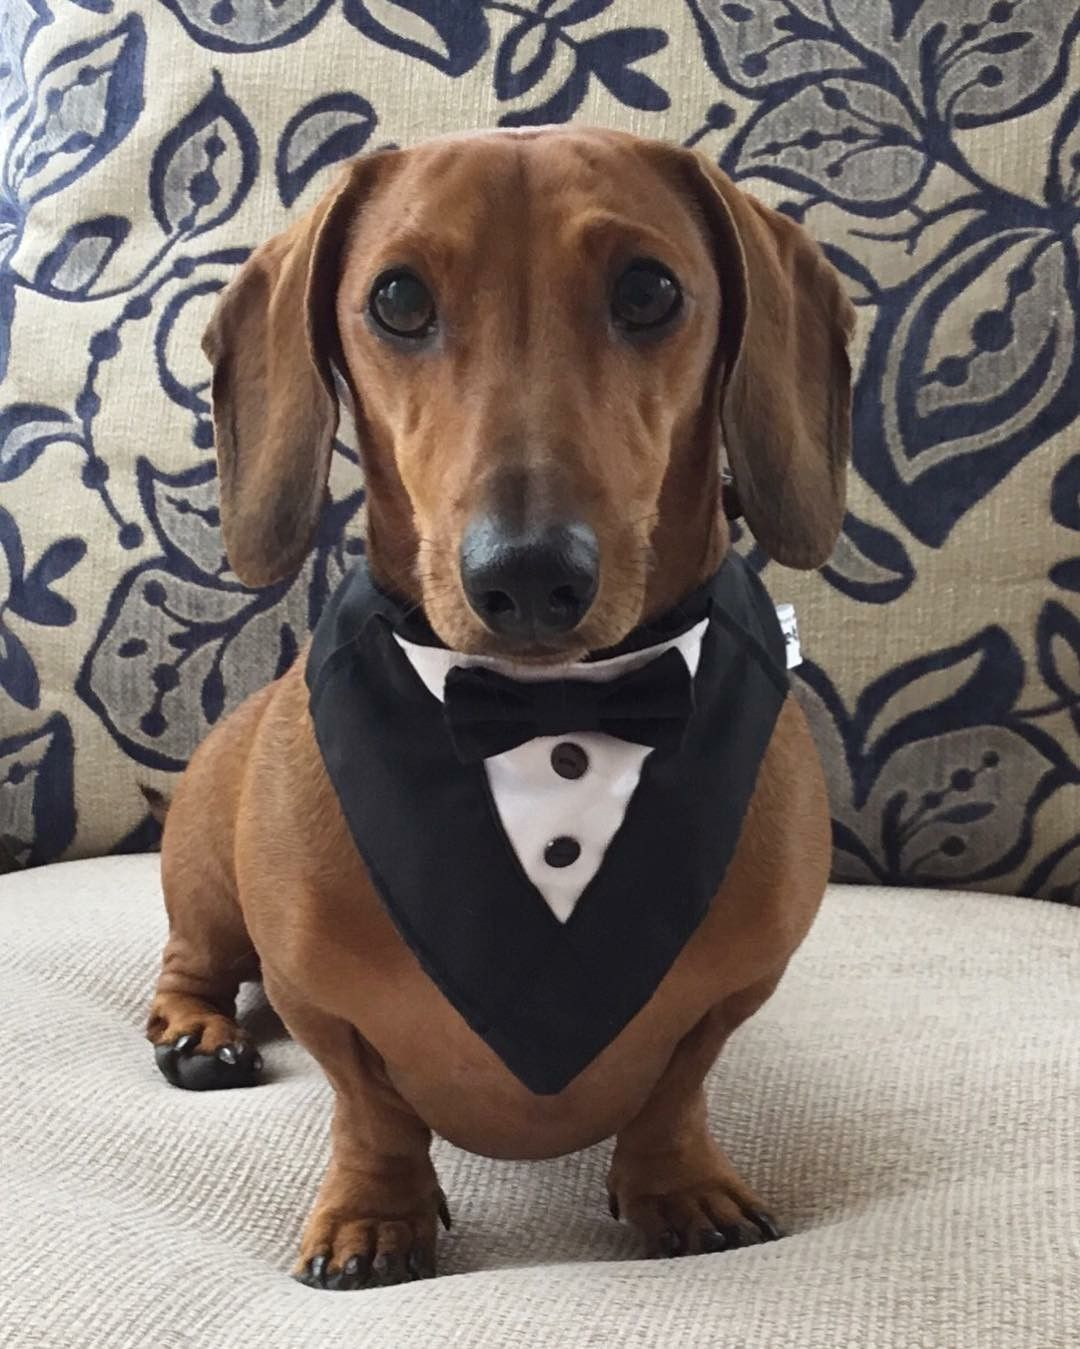 Formal Aggressive Dog Dachshund Breed Dachshund